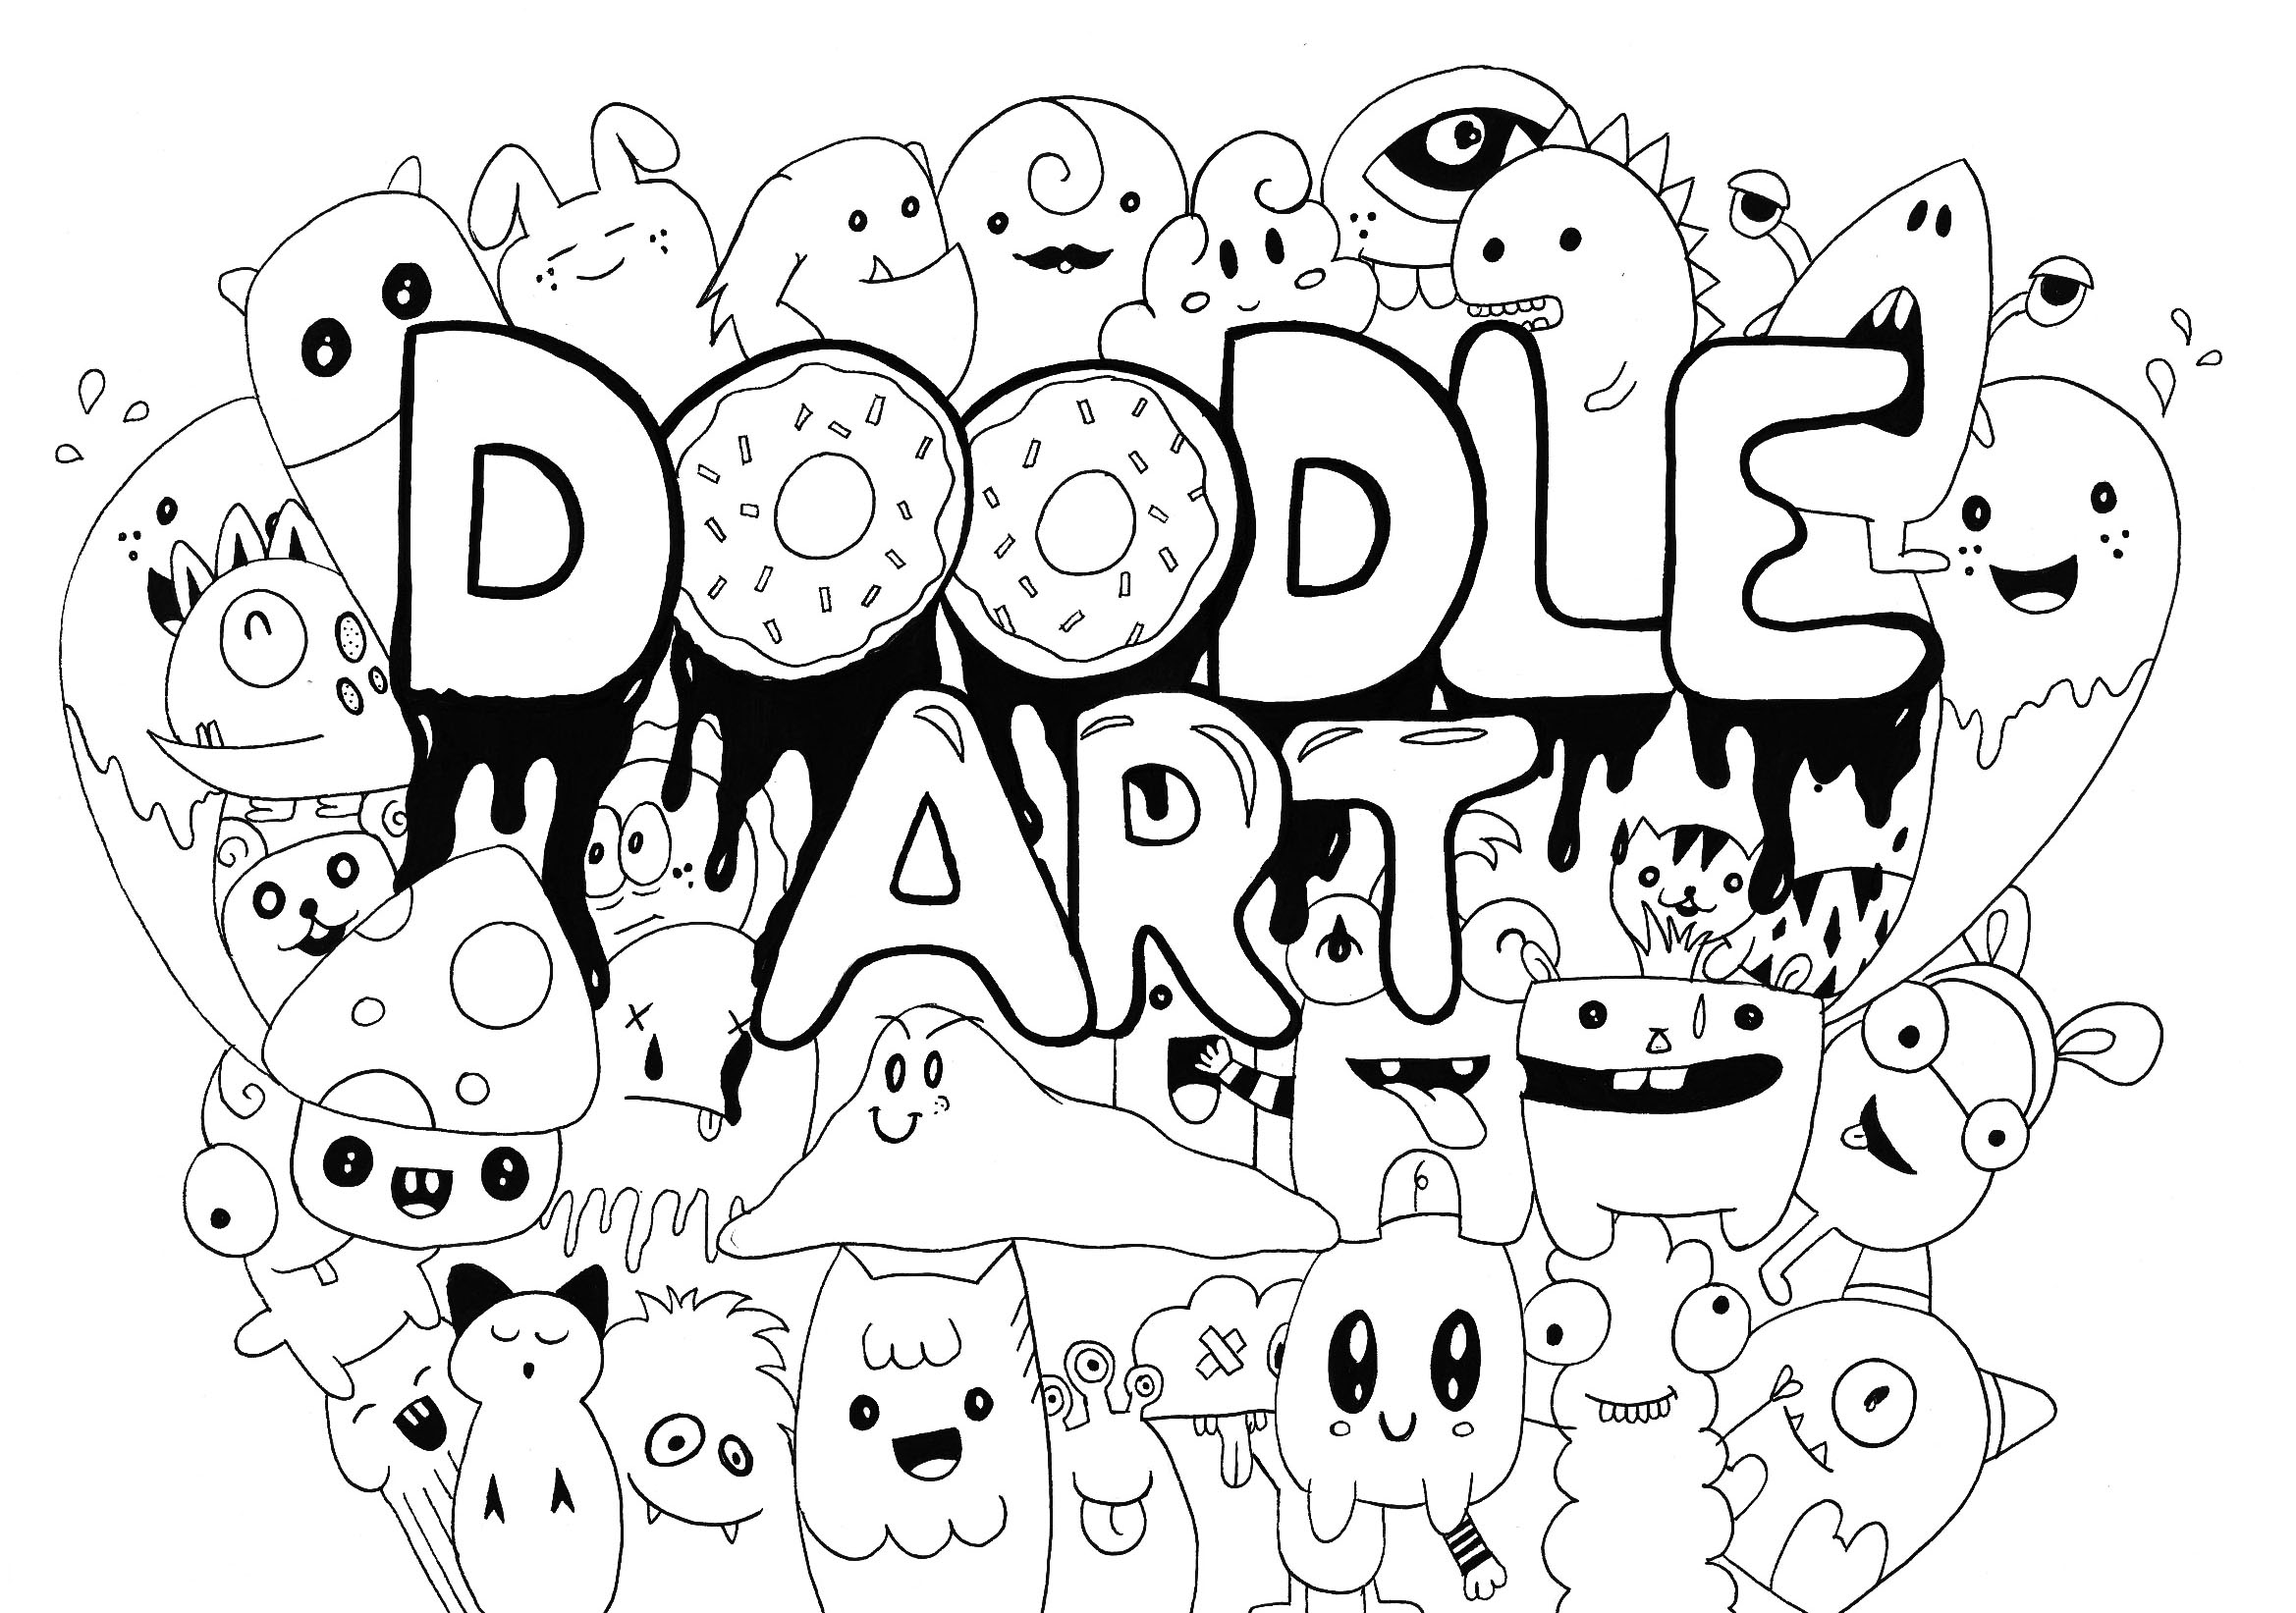 coloring page adults doodle art rachel